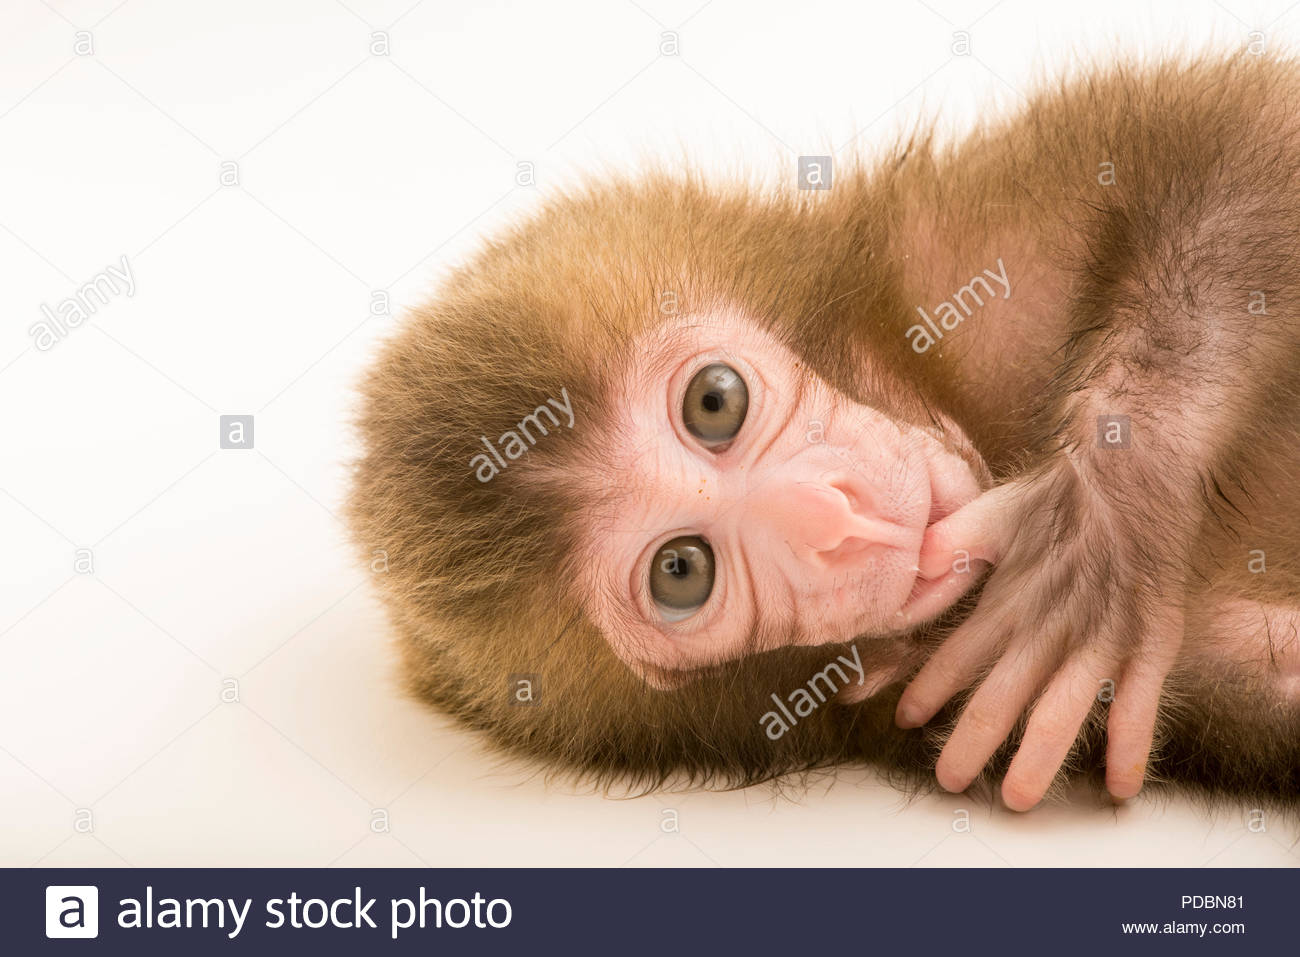 A Japanese macaque or snow monkey, Macaca fuscata, at the Blank Park Zoo. Stock Photo